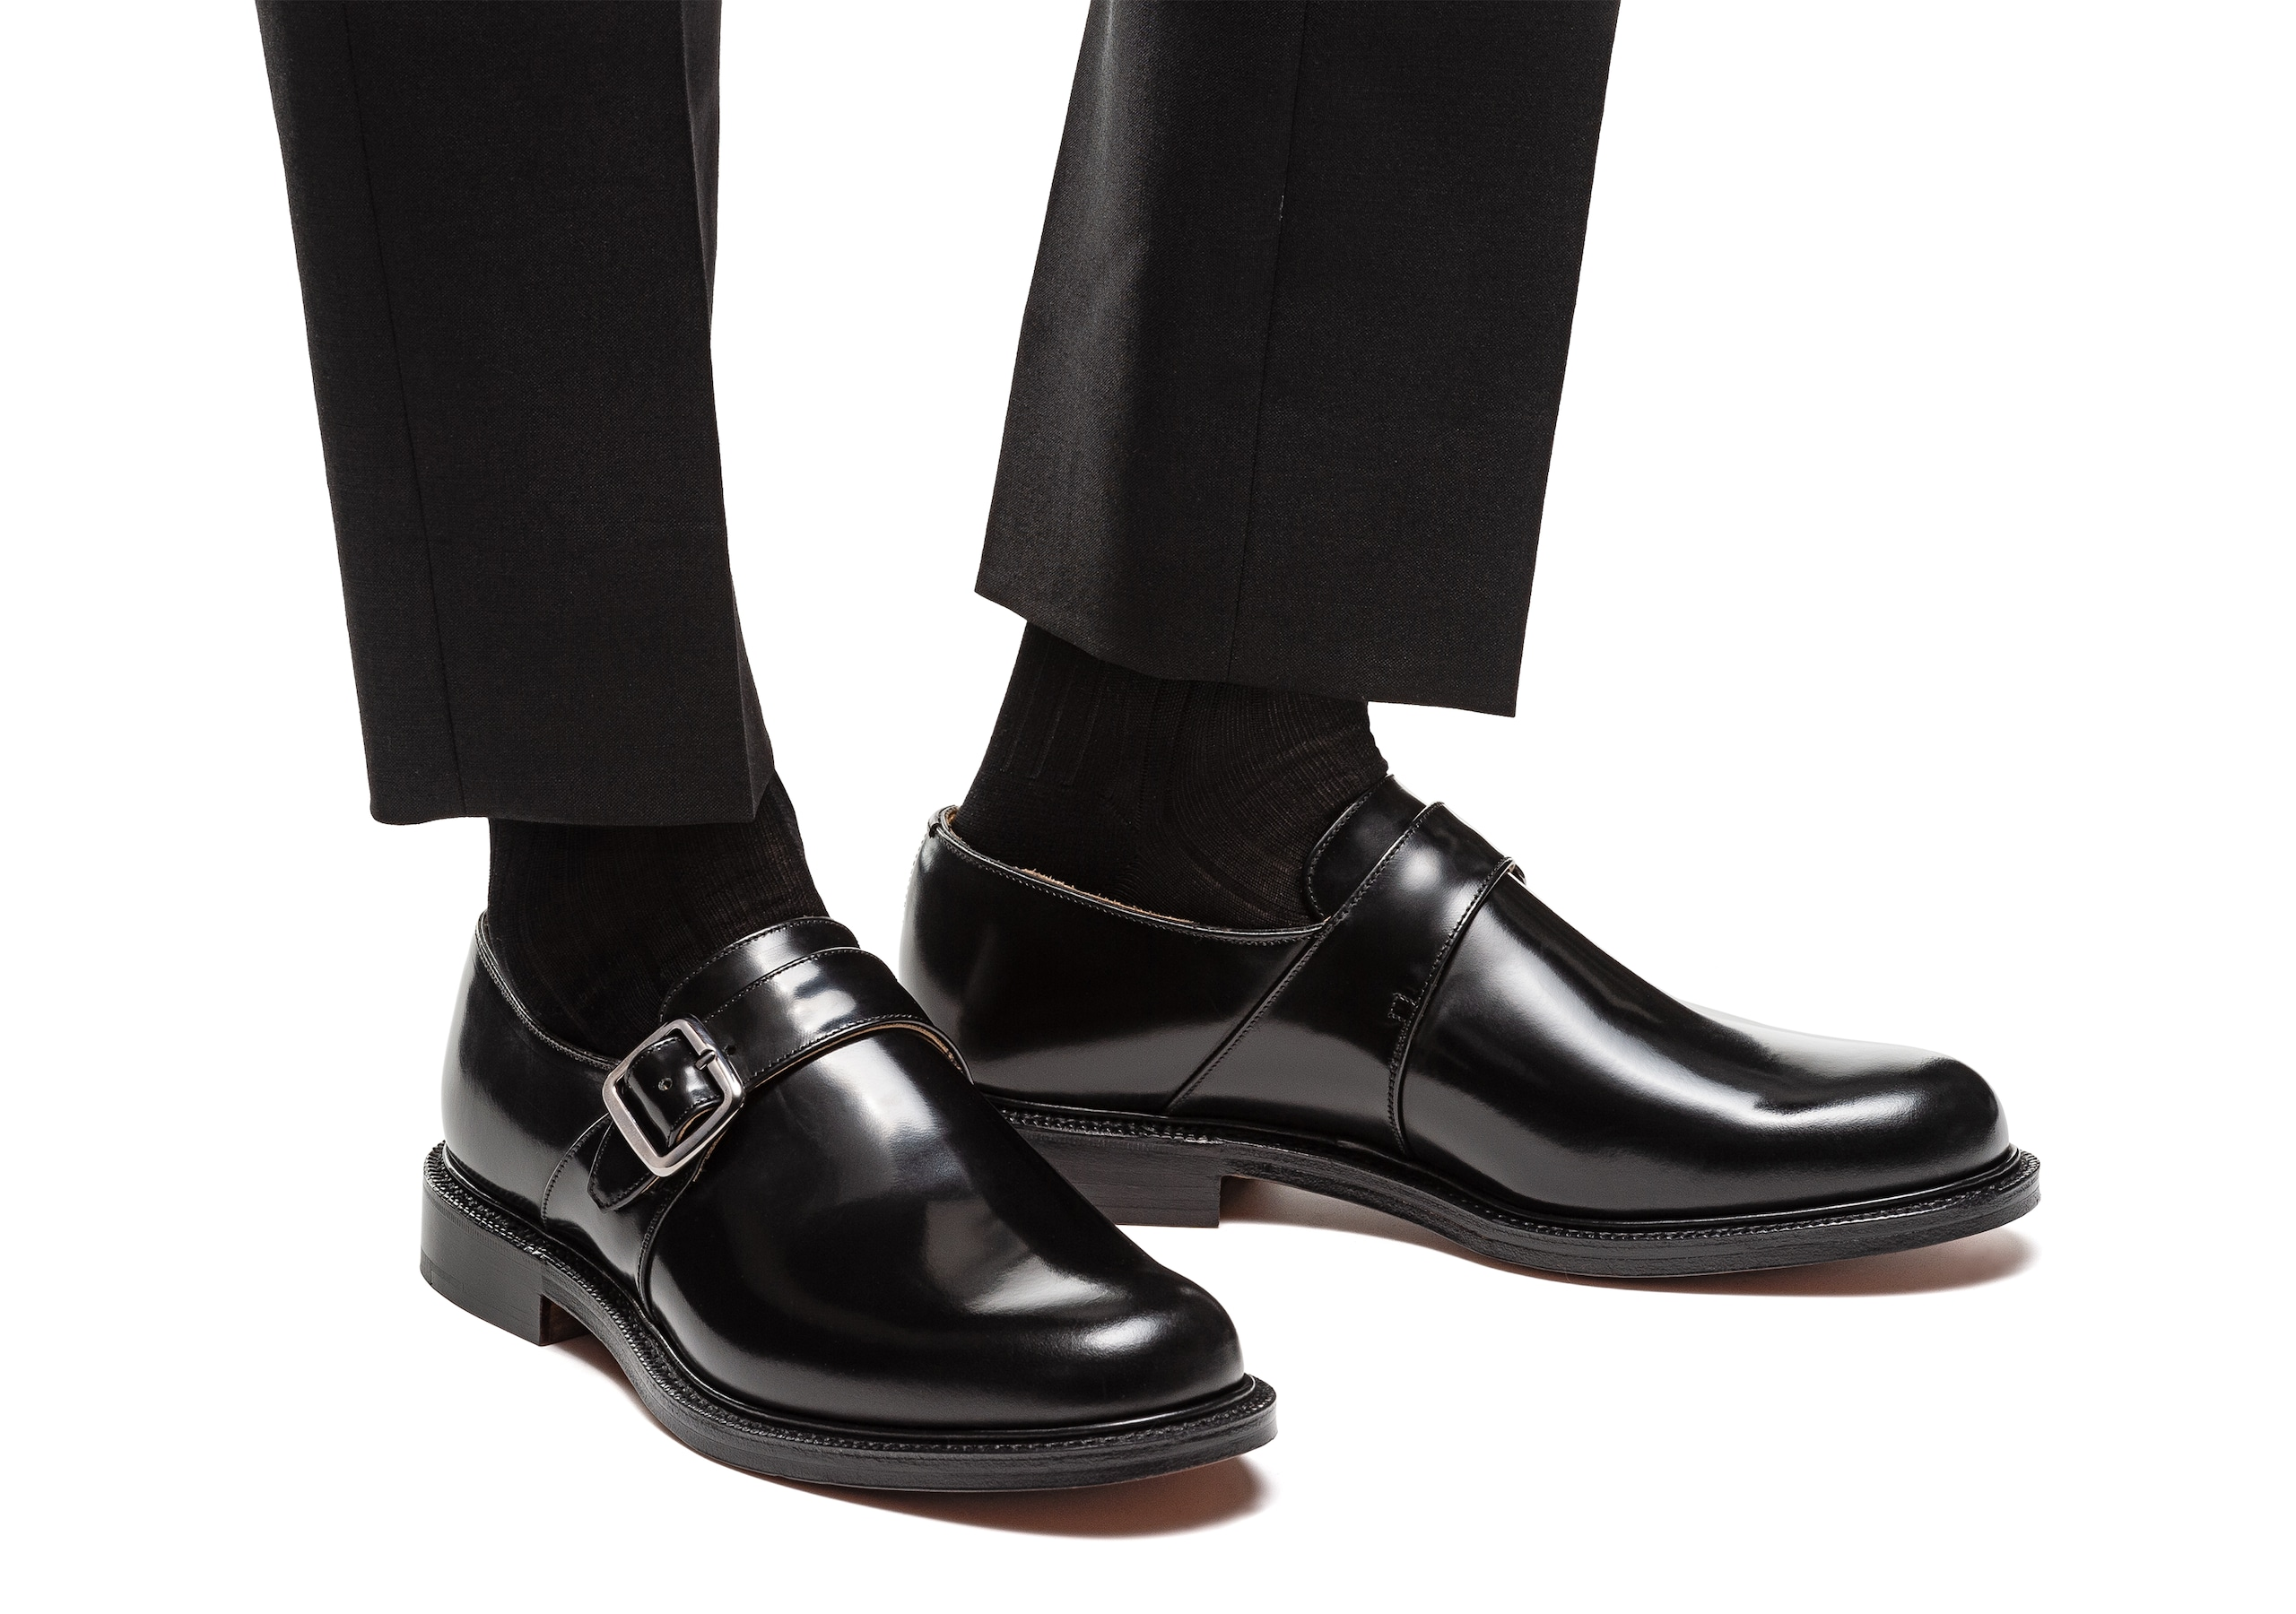 Wrexham Church's Polished Binder Monk Strap Black